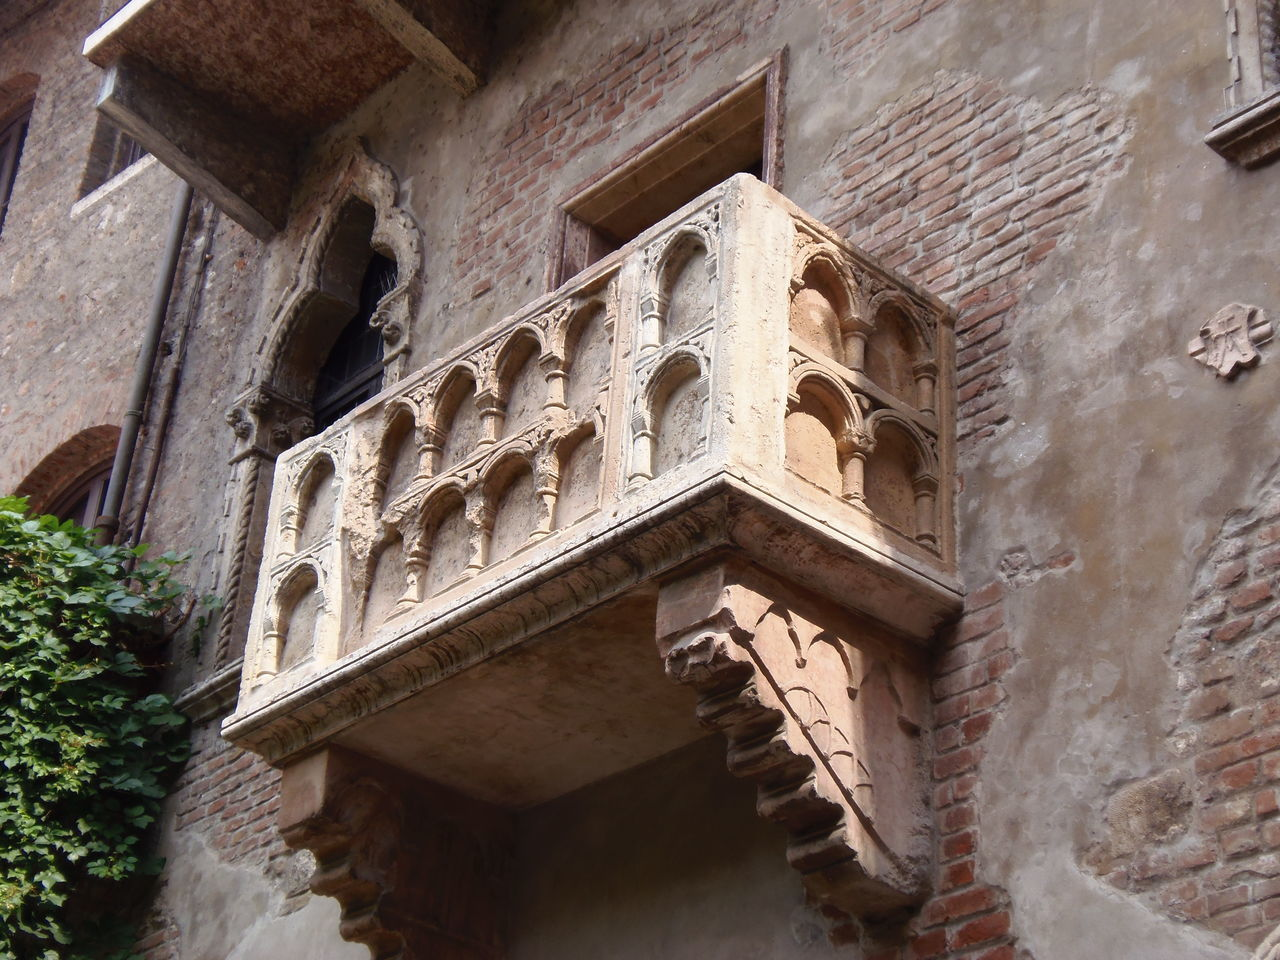 Architecture Building Exterior History Window Verona Italy Verona Verona In Love Juliet Balcony Juliet's House Juliet And Romeo Juliet's Balcony Juliethouse Romeo And Juliet Romeoandjuliet Romeo And Juliet's Balcony Romeo E Giulietta Romeo&juliet RomeoYJulieta Balcony View Balcony Shot Balconyview Travel Photography EyeEm Best Shots EyeEm Best Shots - Architecture EyeEmBestPics